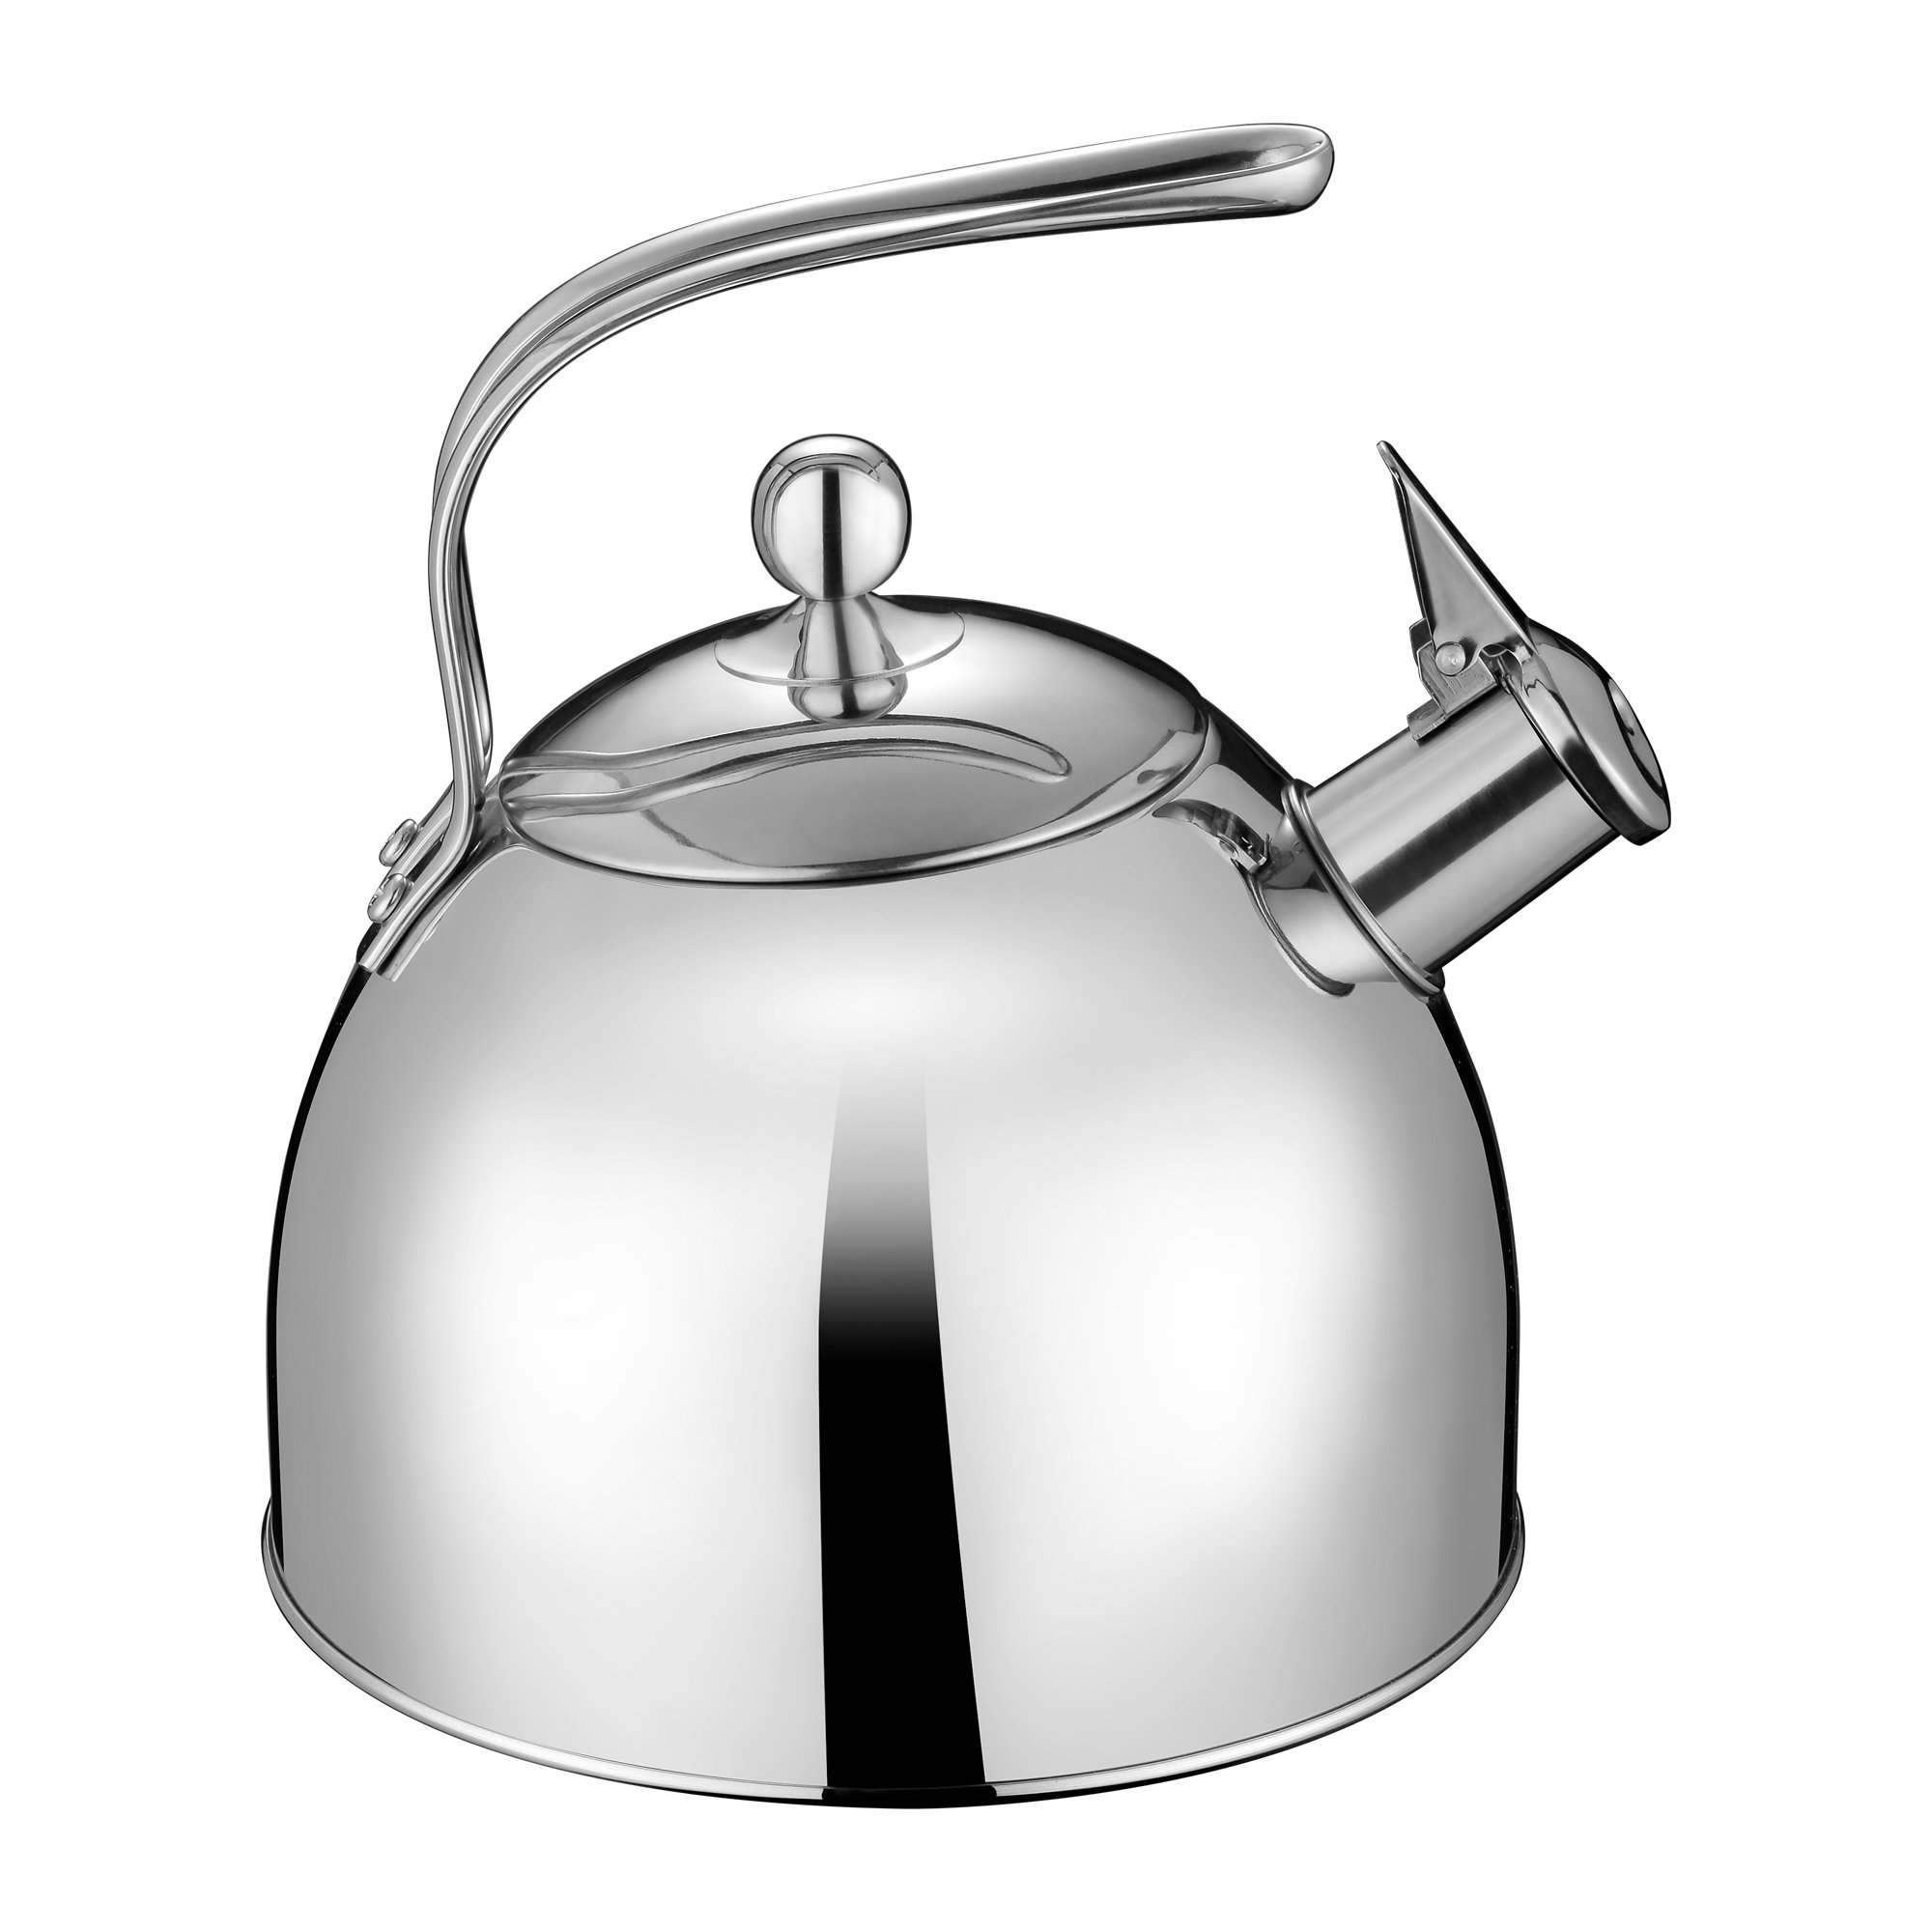 Injoy Whistling Tea Kettle 304 Stainless Steel Teapot Classic Cookware in LFGB/FDA Standard for All Stovetops - 1  Insulation Pad Included, 2.64 Quart/2.5 L, Silver by InJoy (Image #2)